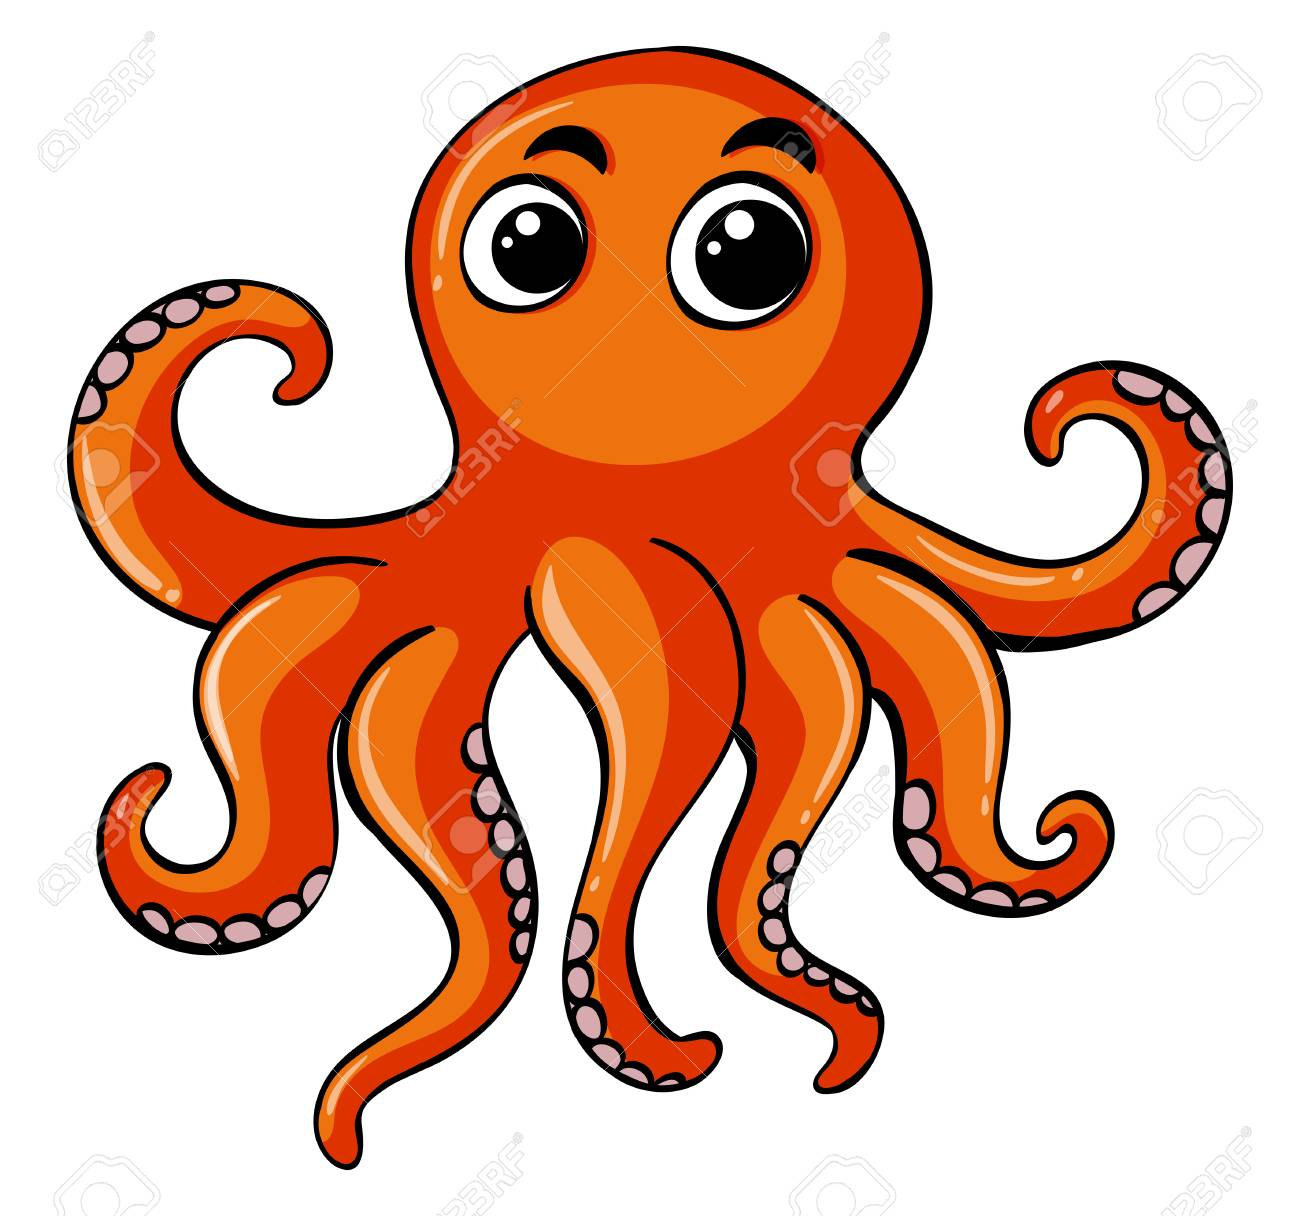 hight resolution of orange octopus on white background illustration stock vector 81976127